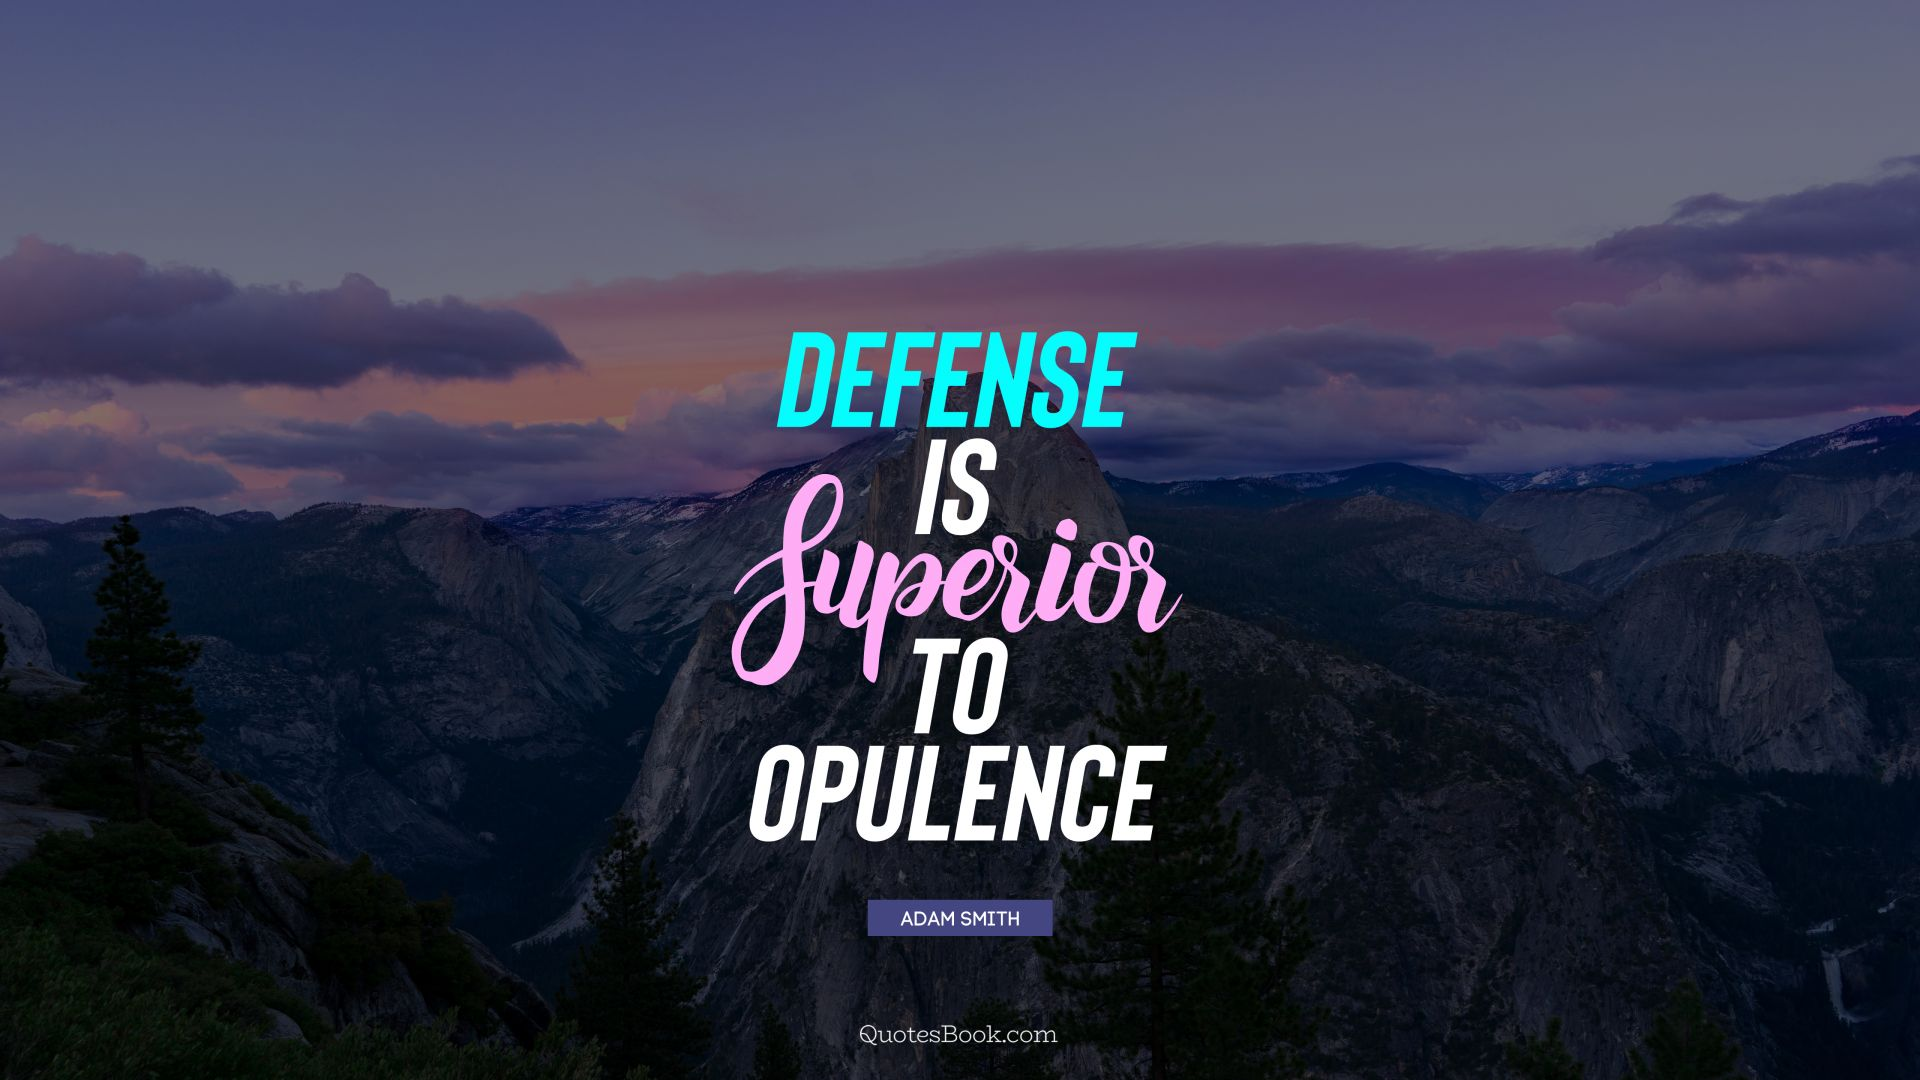 Defense is superior to opulence. - Quote by Adam Smith